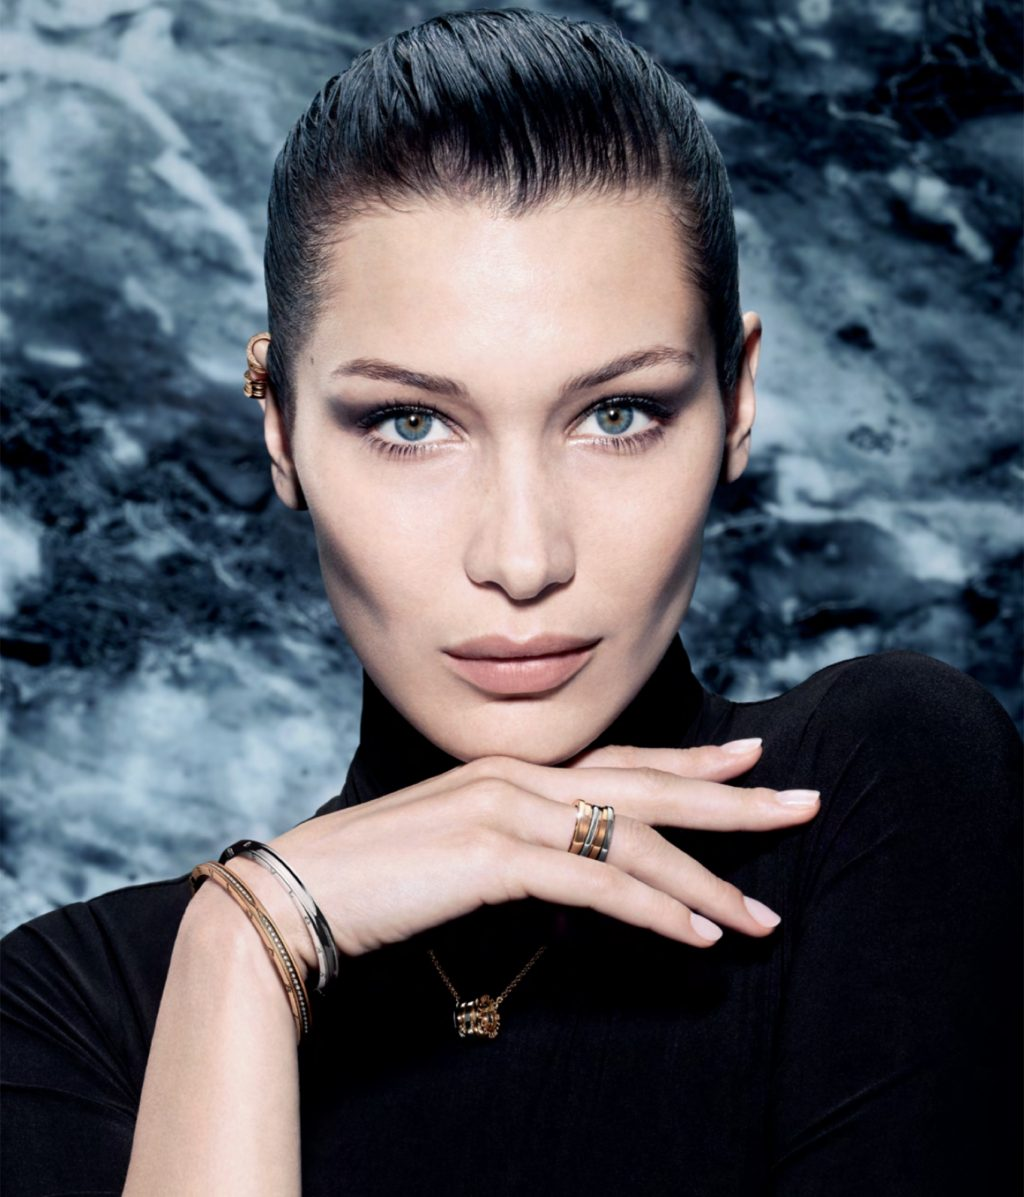 Bulgari Jewelry Is Always a Good Idea — Just Ask Bella Hadid